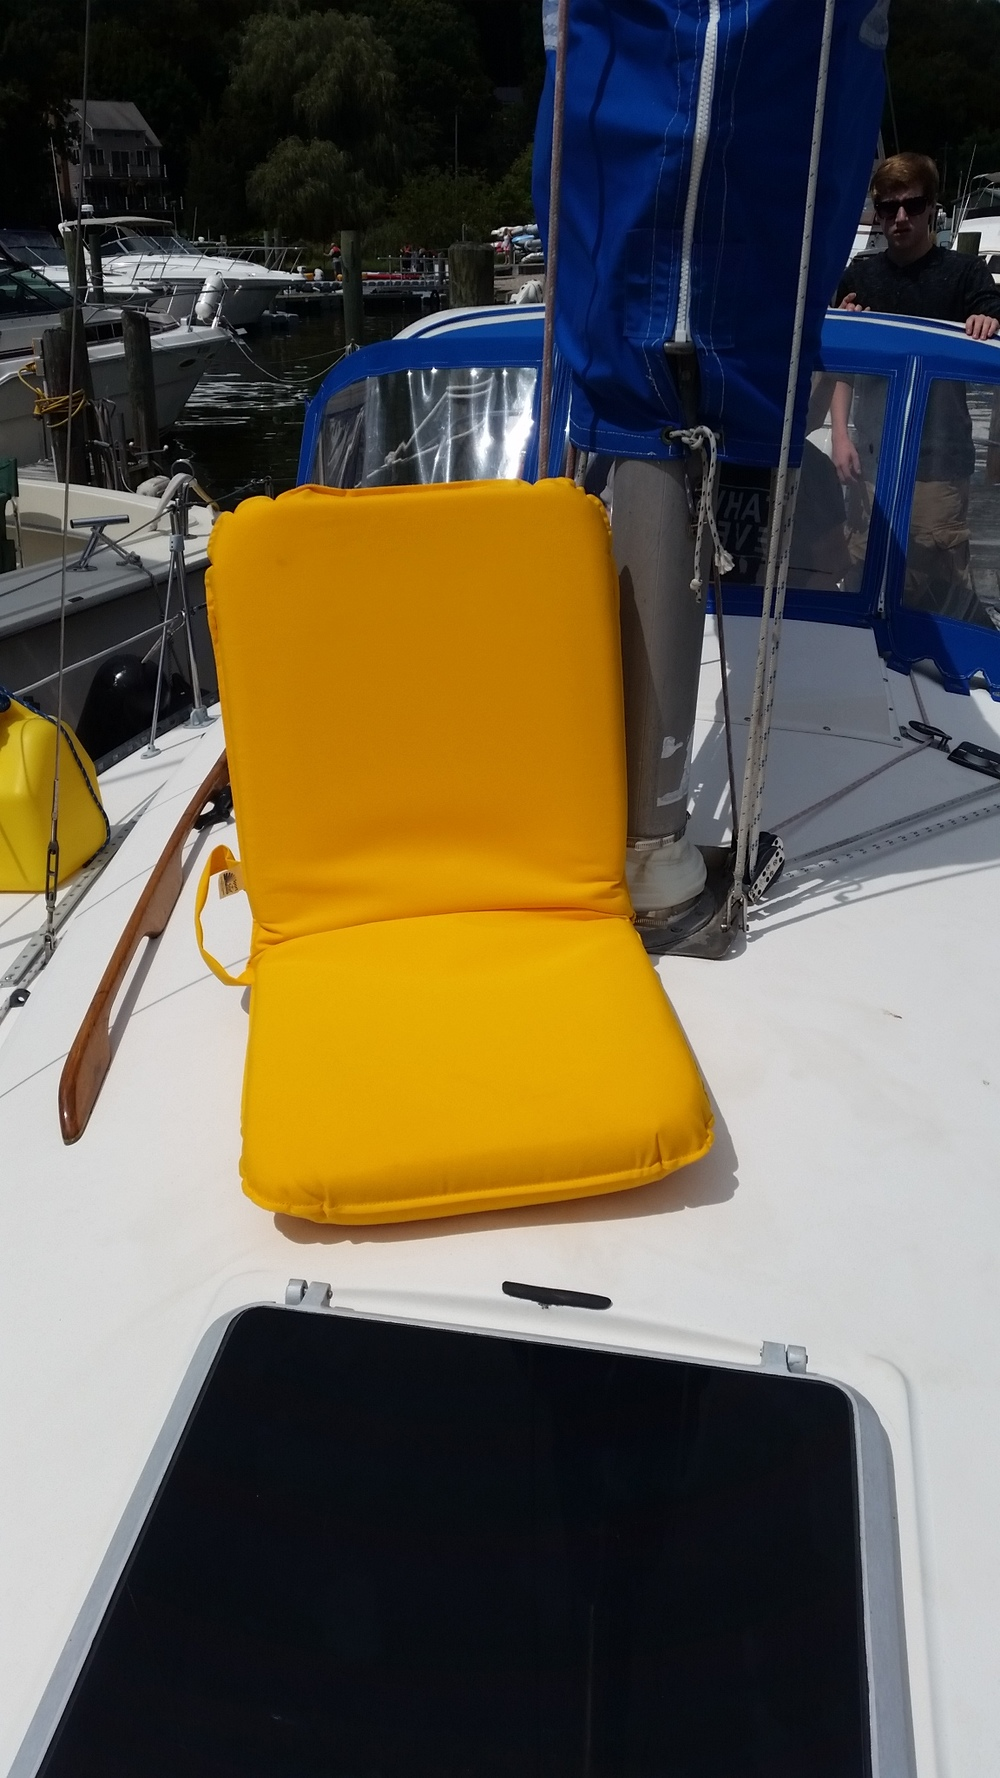 Seat    cushion    recliner    chair    adjustable   Sunbrella   marine   fabric   internal   frame   ratchet   hinge   multi   position   beach   recreation   boating   sailing   rv   camping   fishing   bleacher   bleachers   rodeo   sports    sporting   hunting   soccer   baseball   football   hockey   lacrosse   cockpit sailboat tailgating